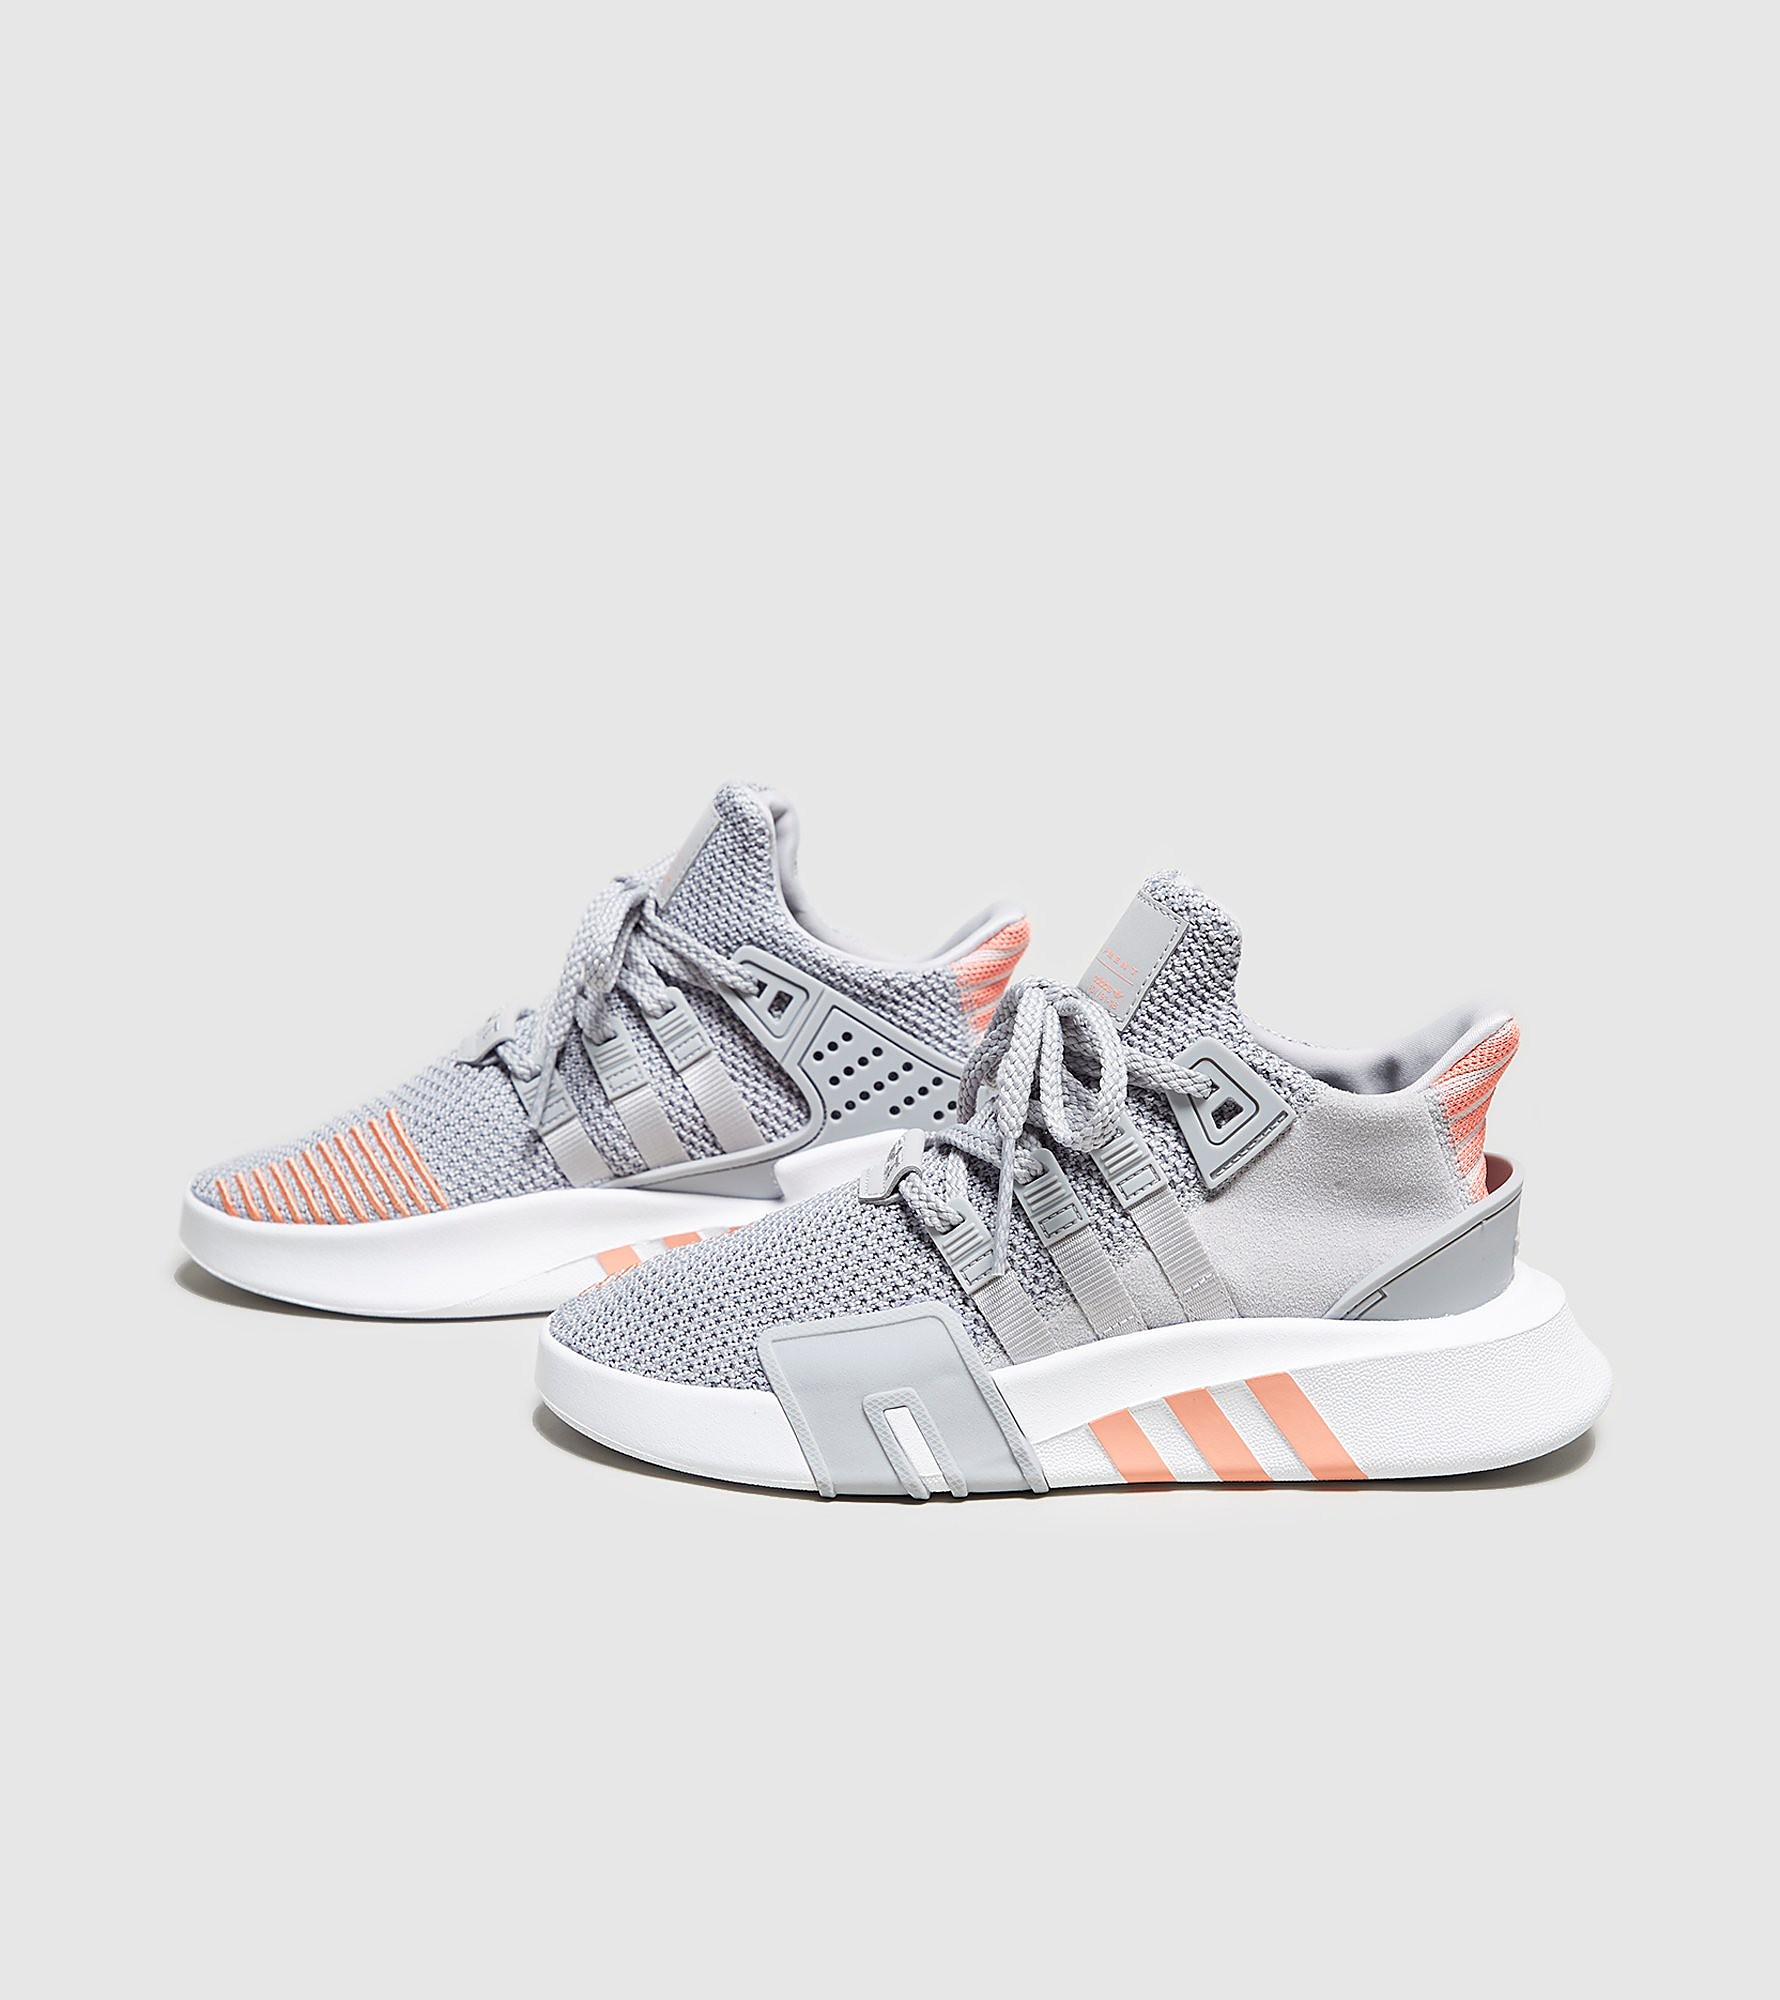 adidas Originals EQT Basket ADV Women's